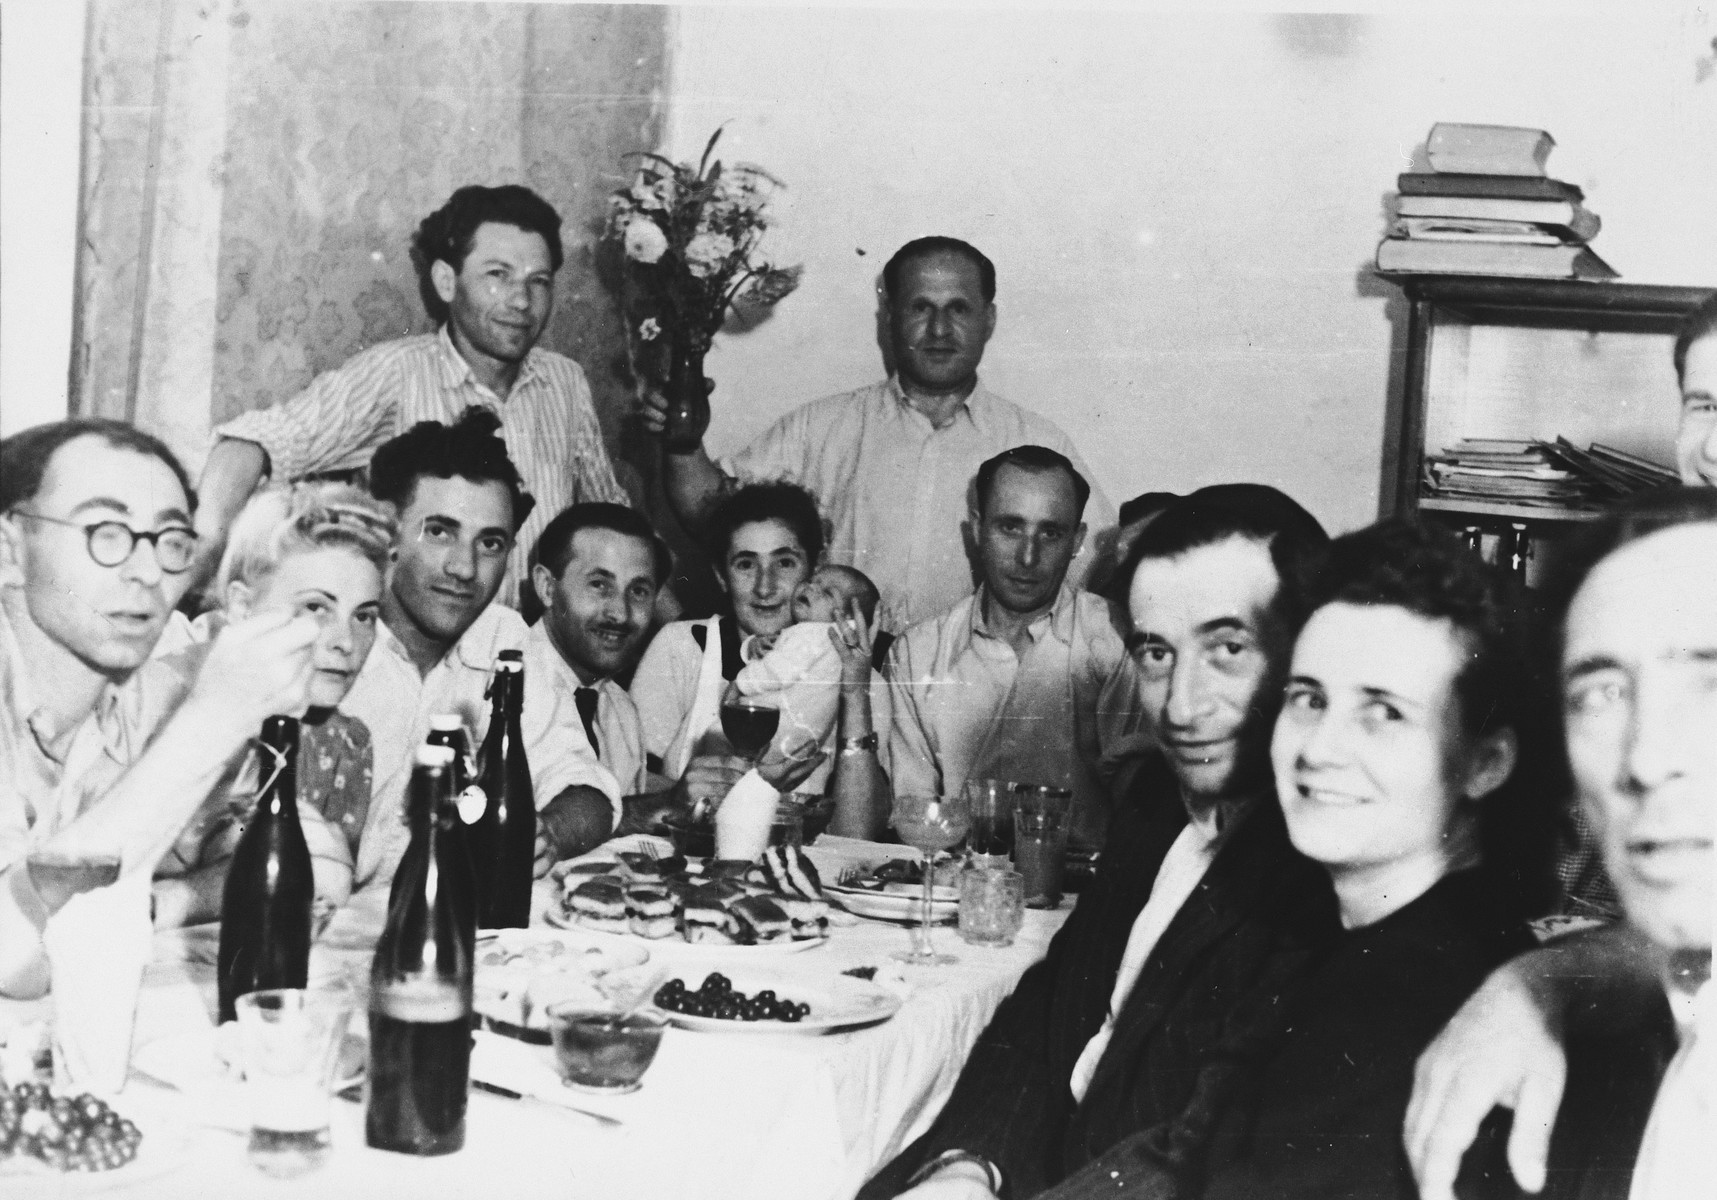 Jewish displaced persons gather around a table for a celebration in the Lampertheim DP camp.